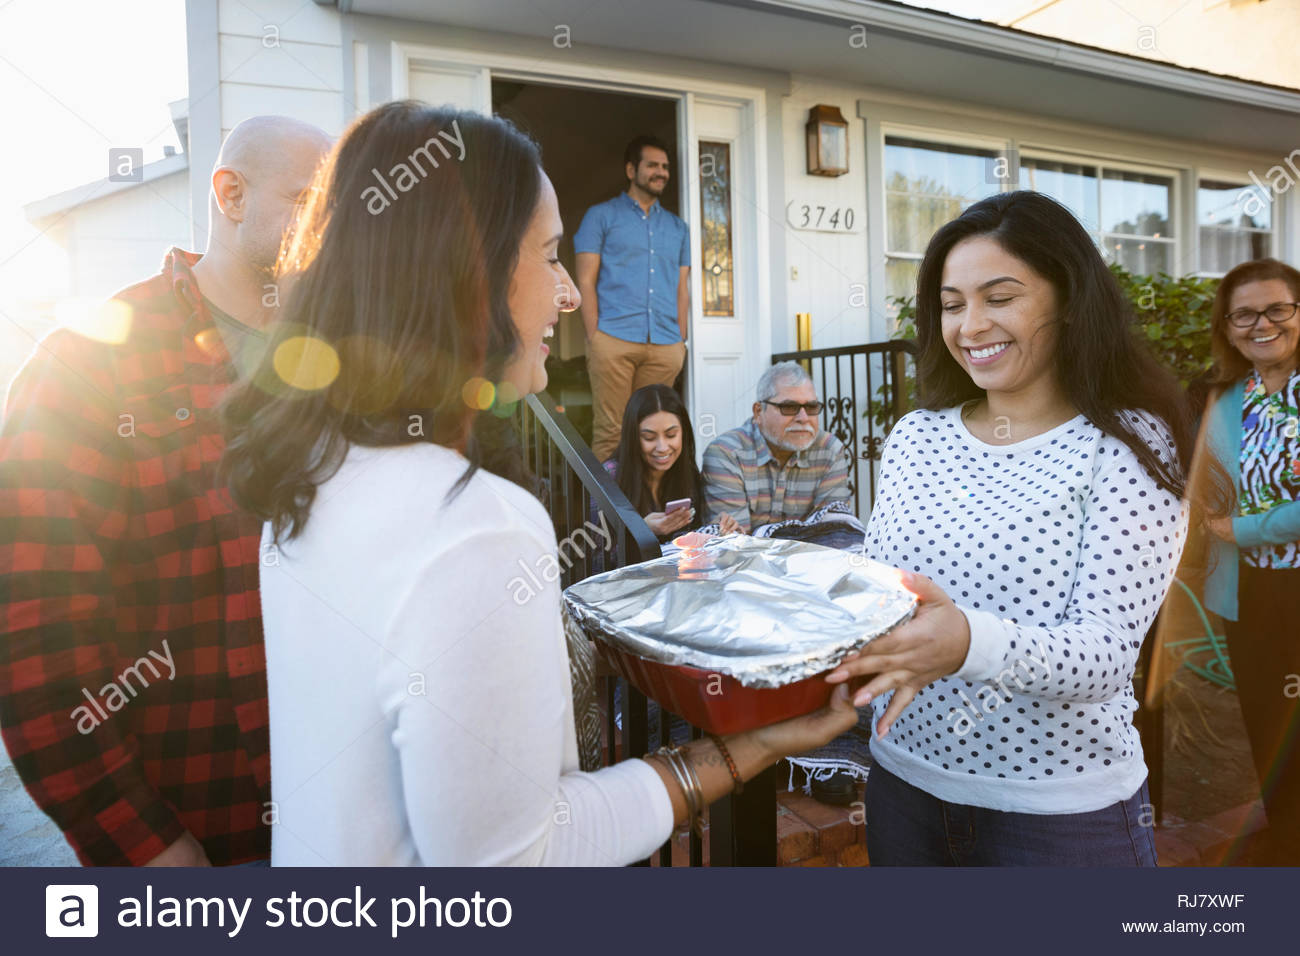 Latinx woman delivering casserole to neighbor - Stock Image